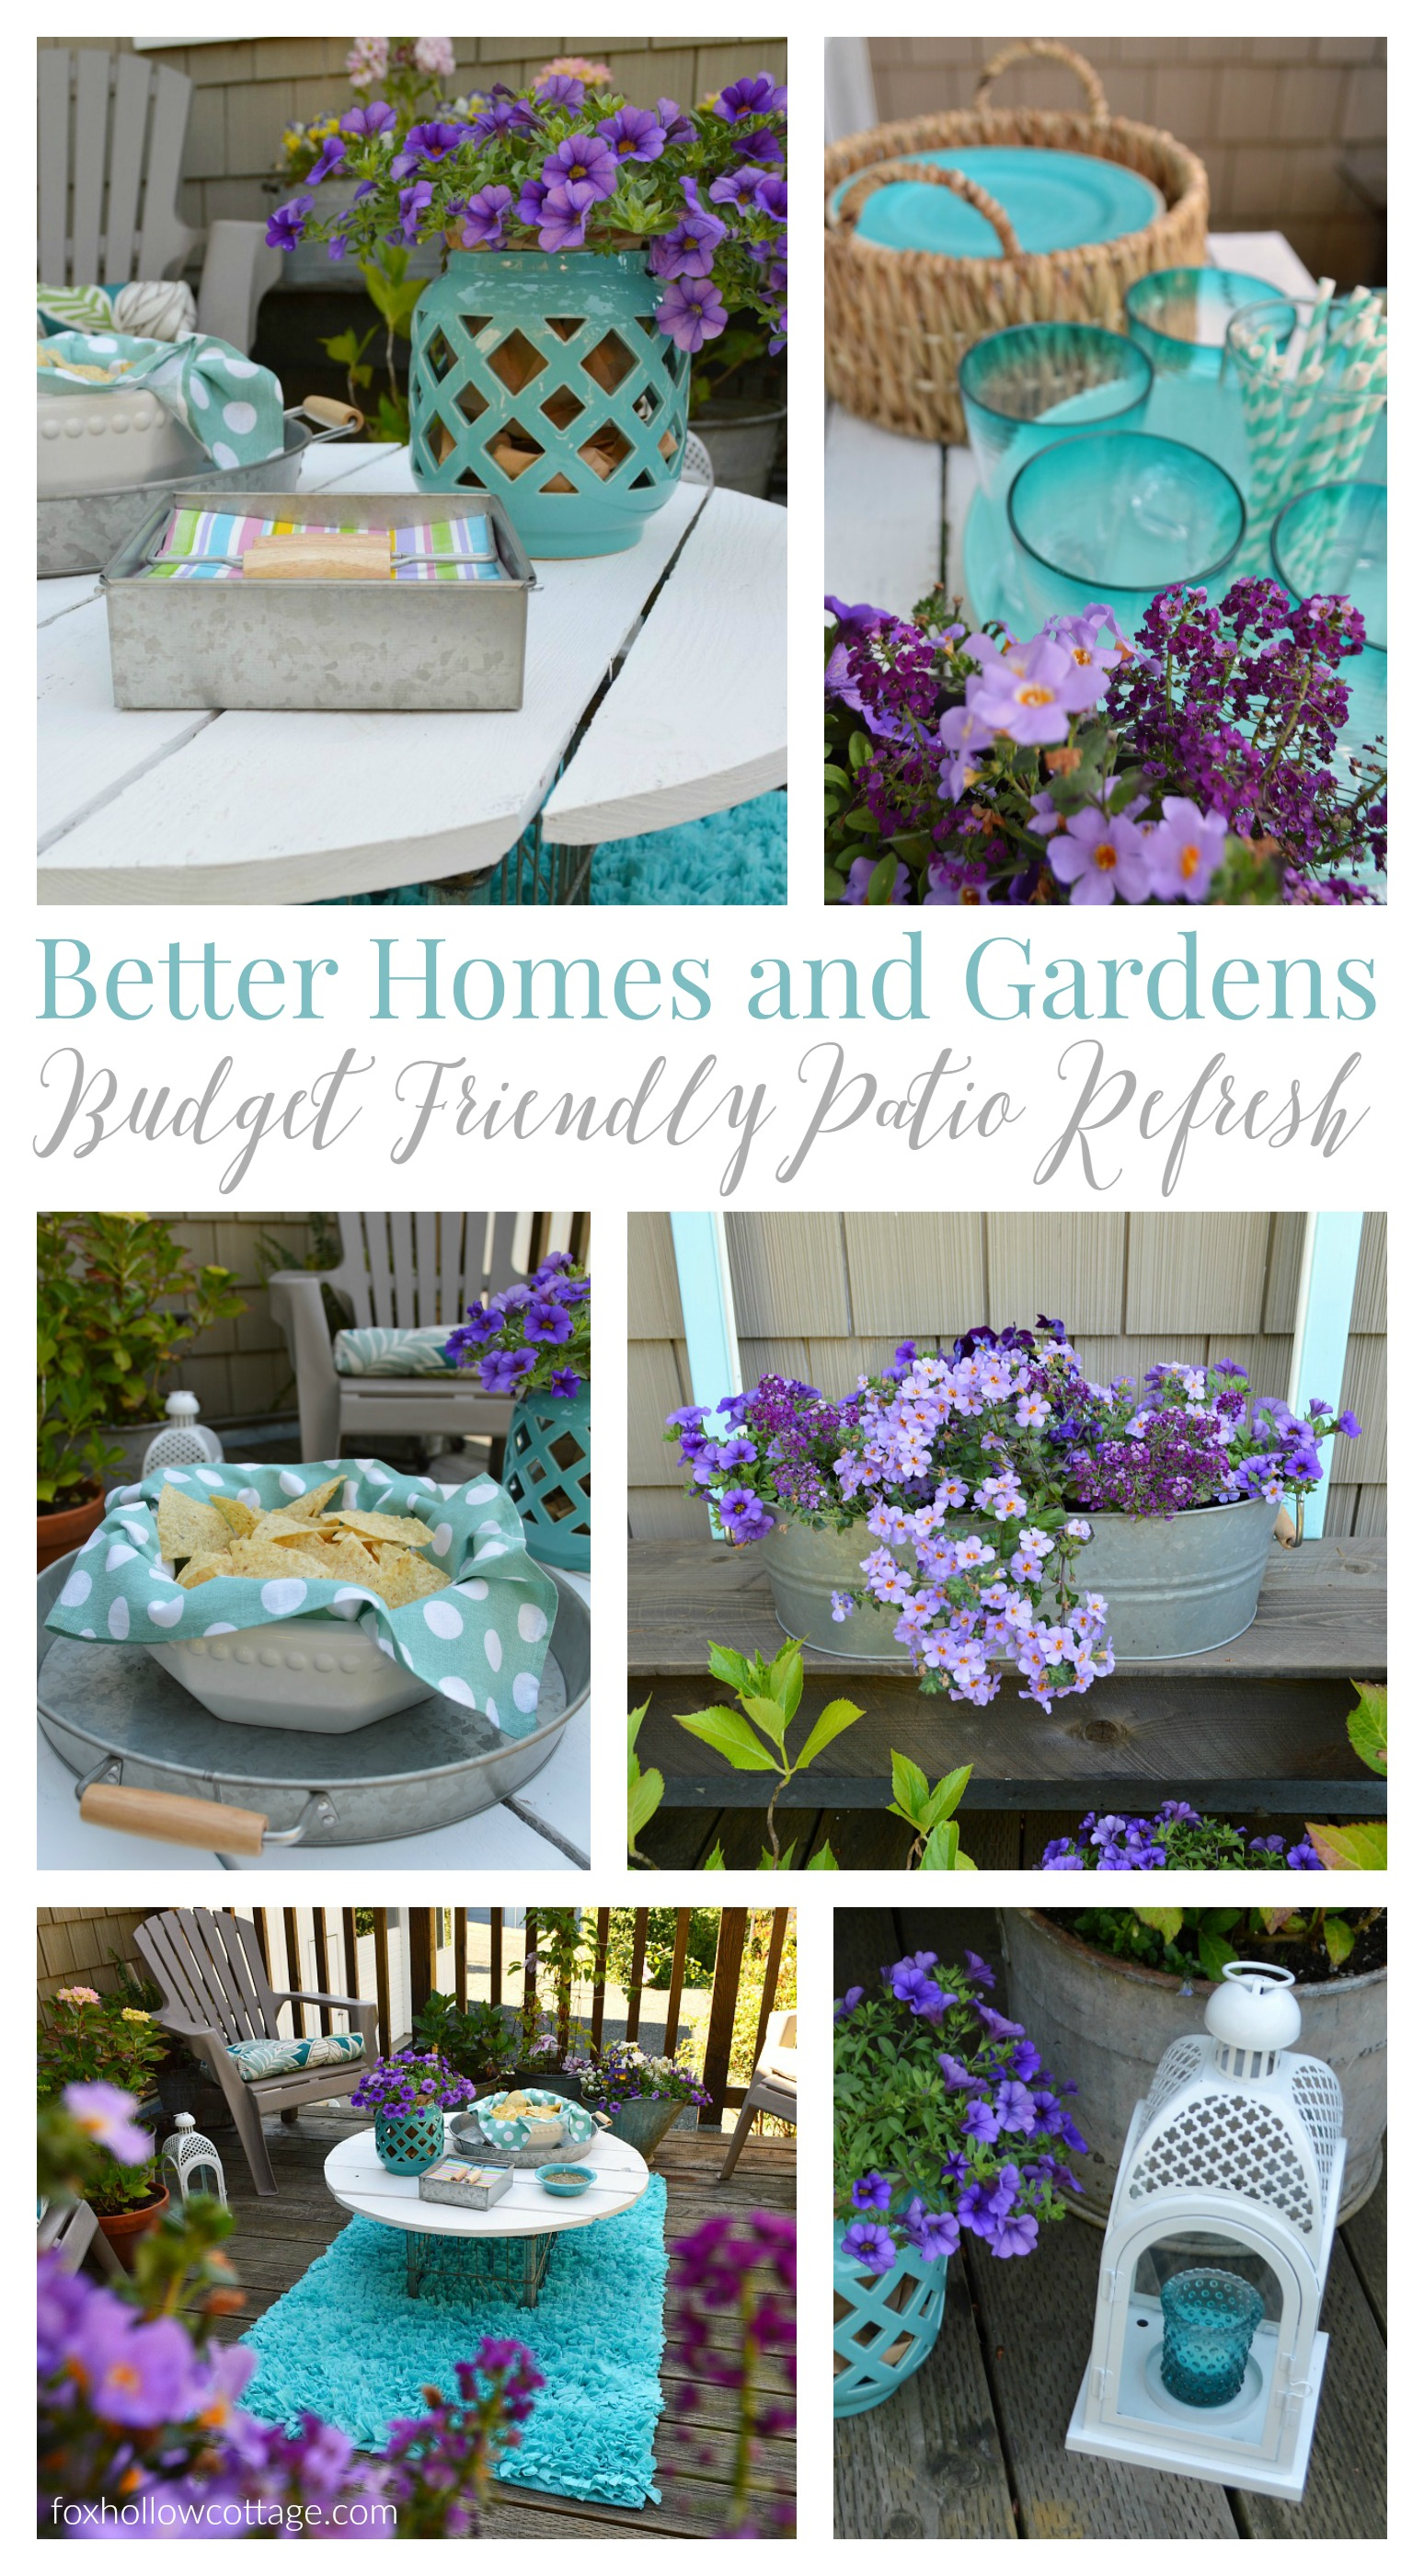 Better Homes and Gardens Live Better Deck Decorating Ideas - foxhollowcottage.com - Pretty purple flower patio refresh with aqua accents, all on a Walmart budget